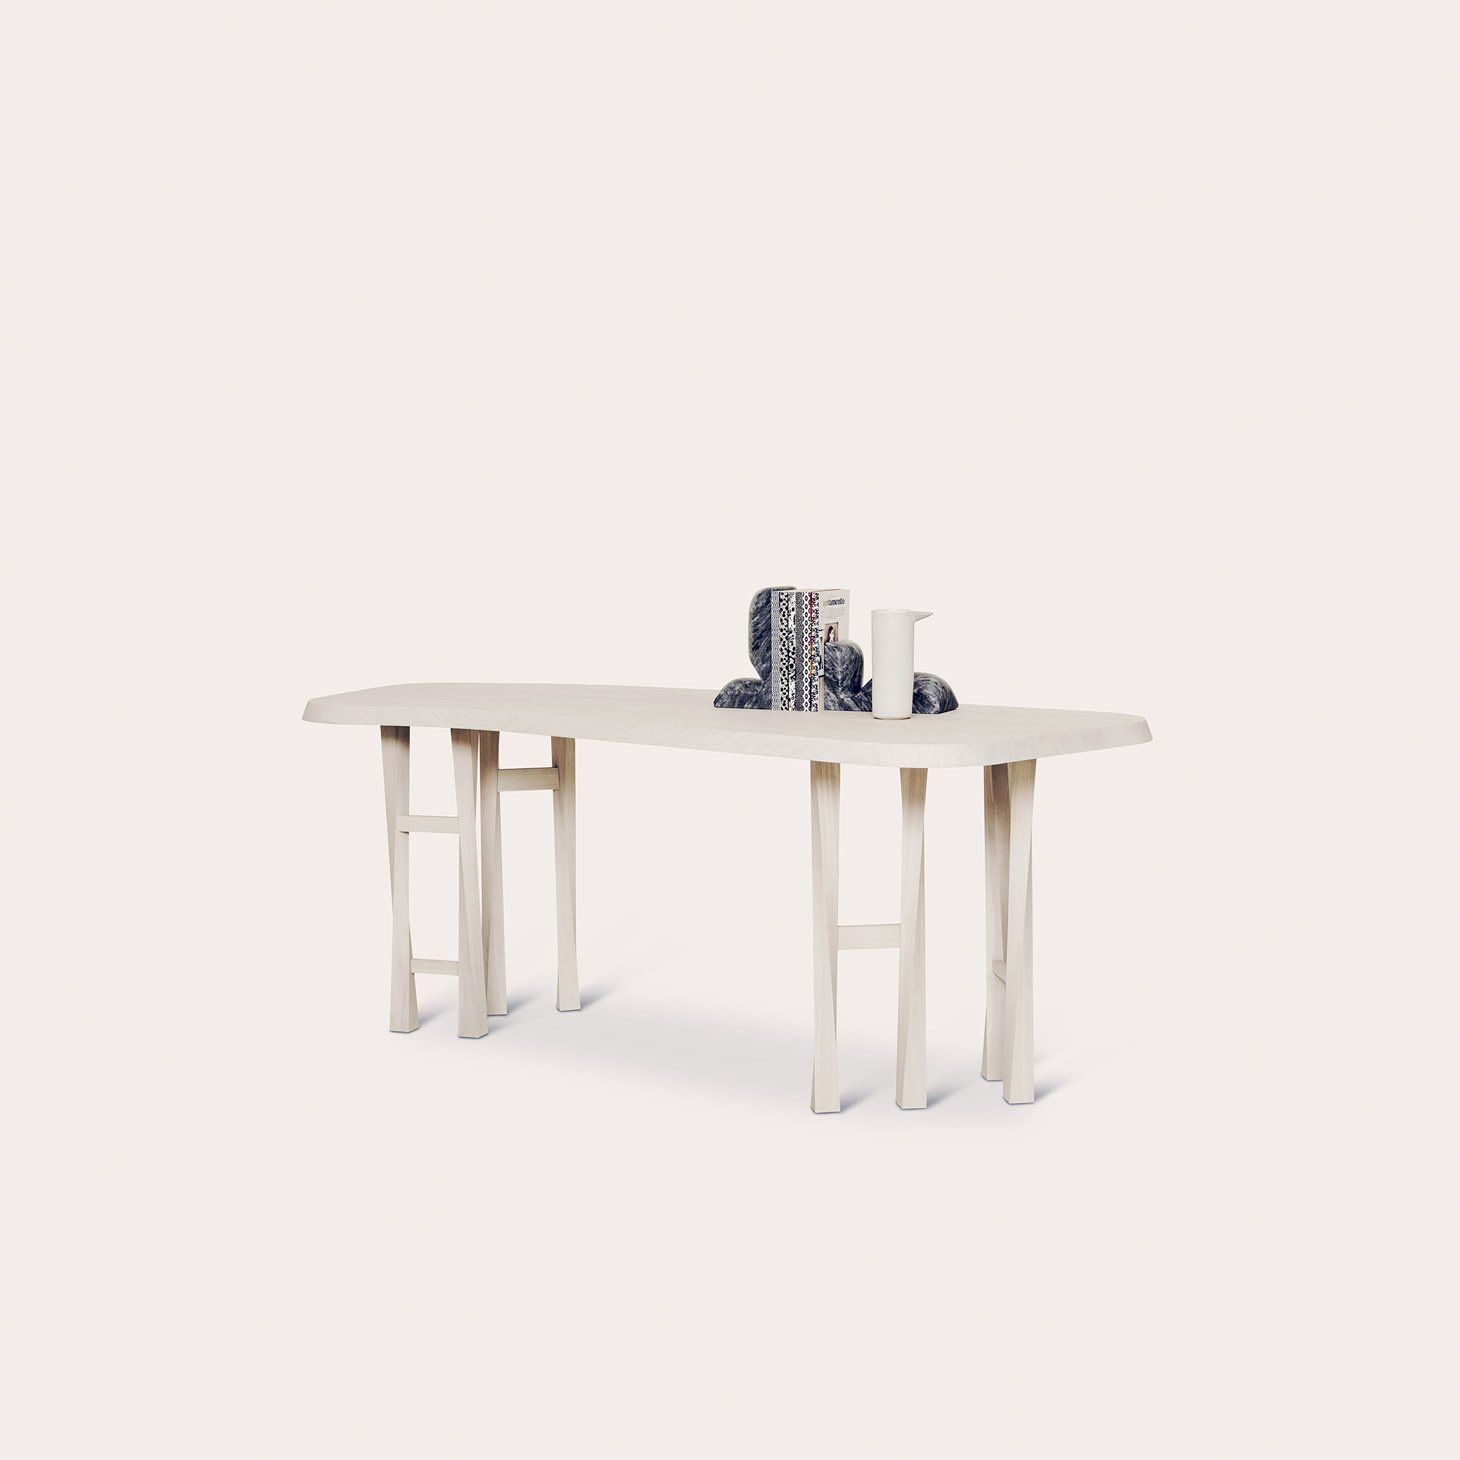 Twi Tables Christophe Delcourt Designer Furniture Sku 008 230 10428